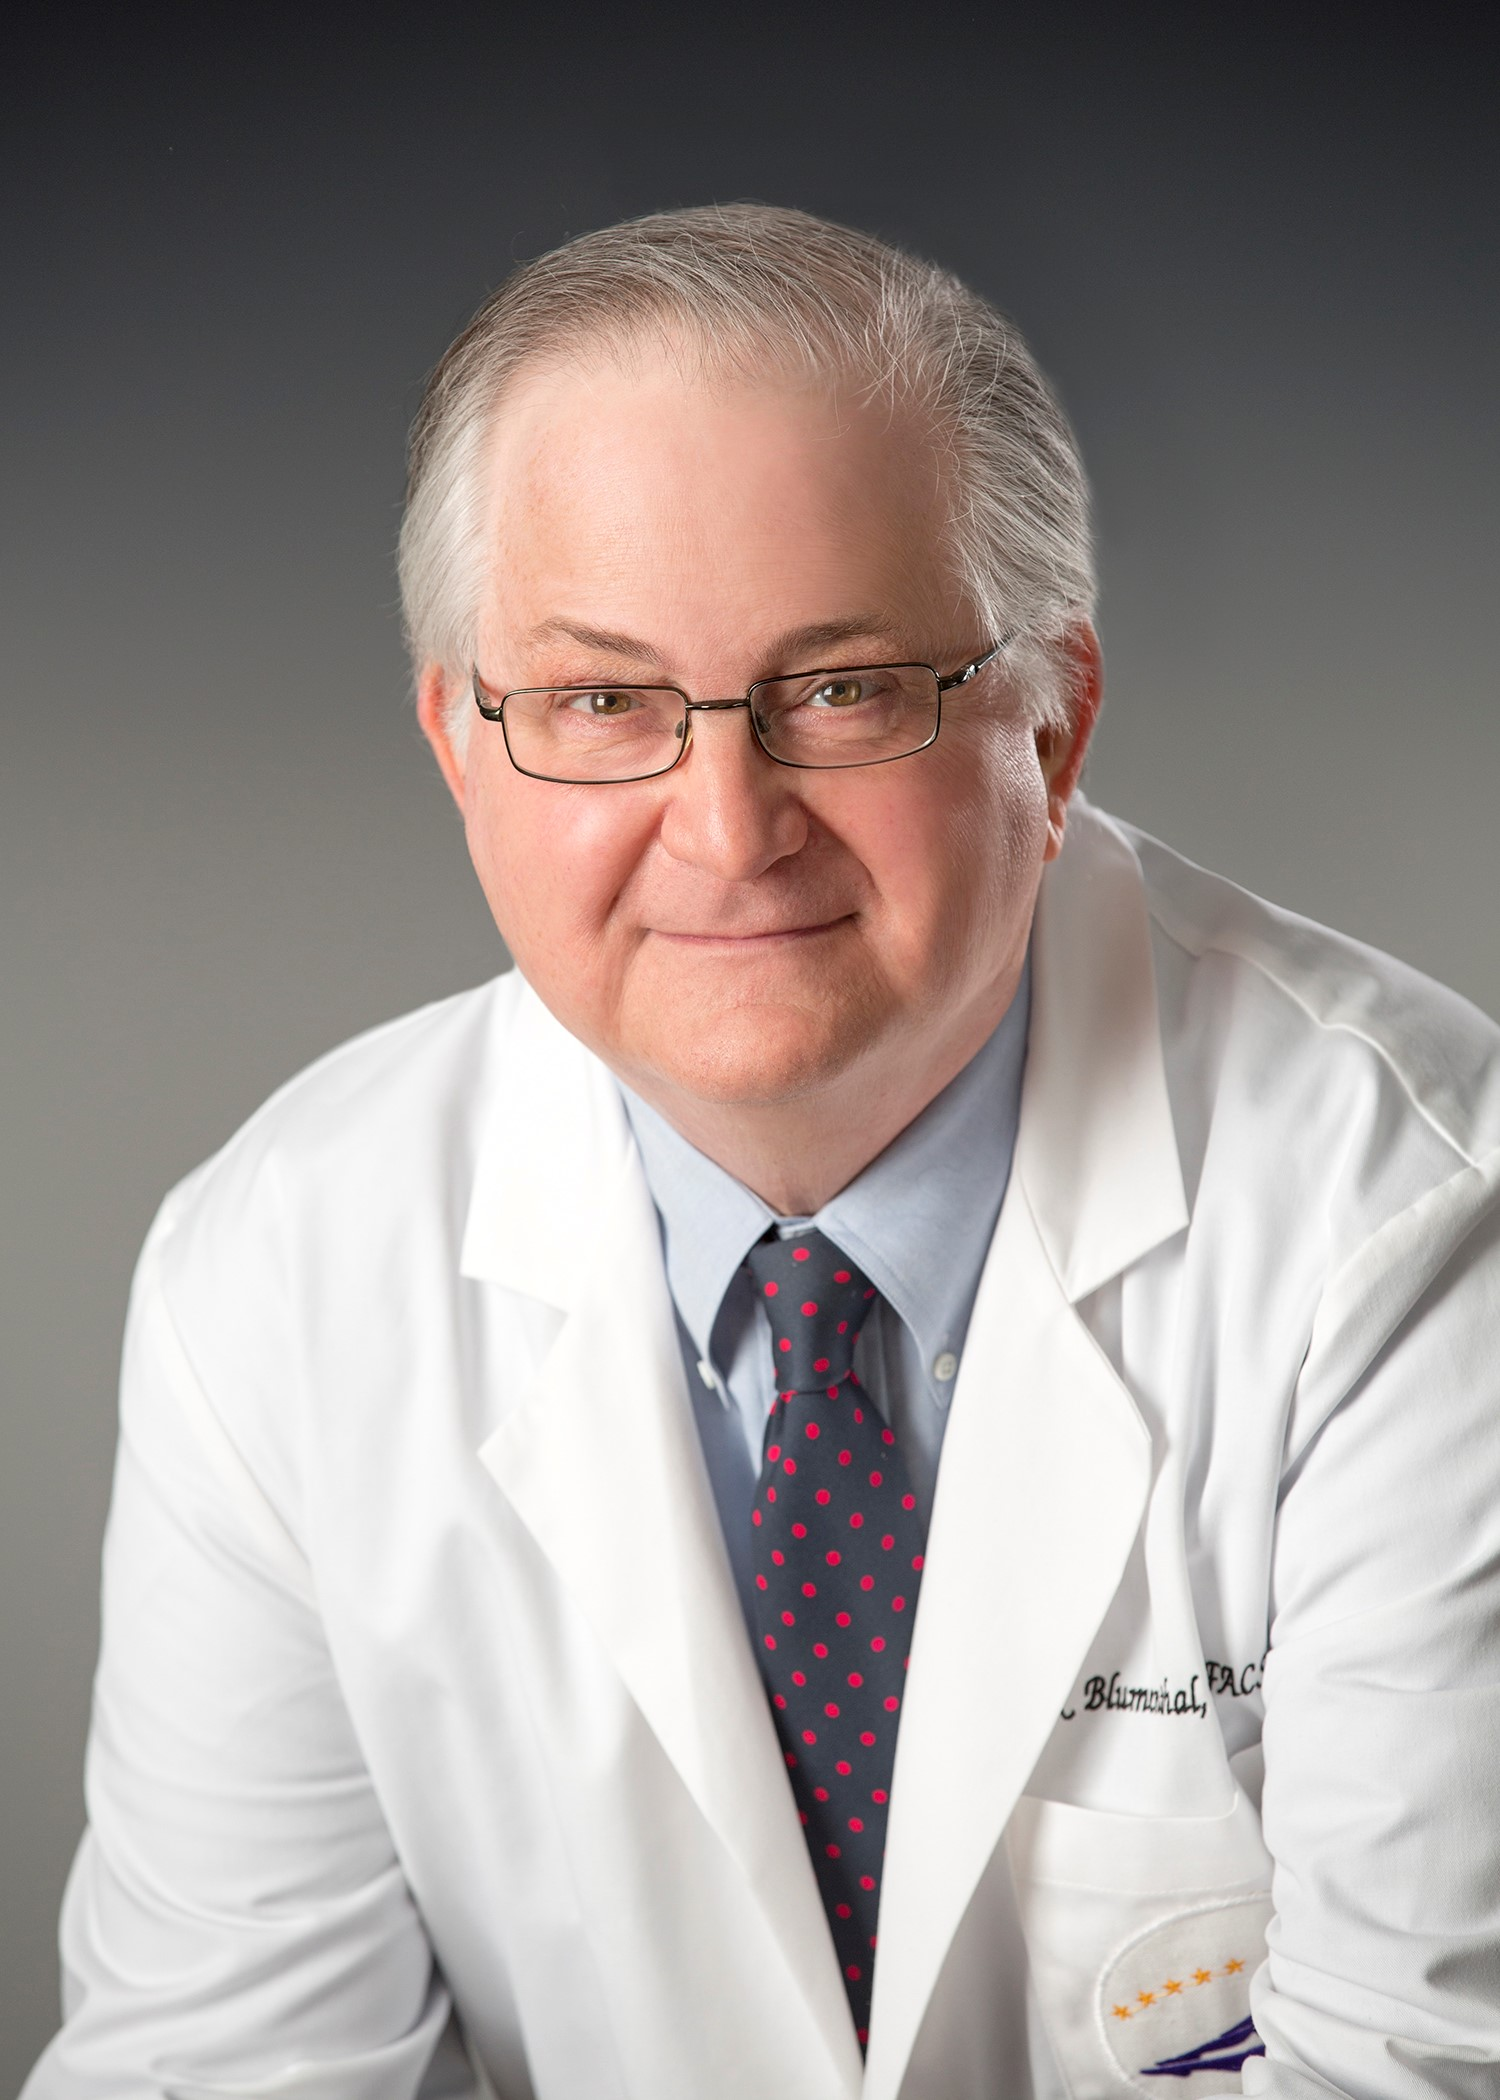 Dr. Mark Blumenthal of the Vein Center & CosMed in St. Louis, MO.